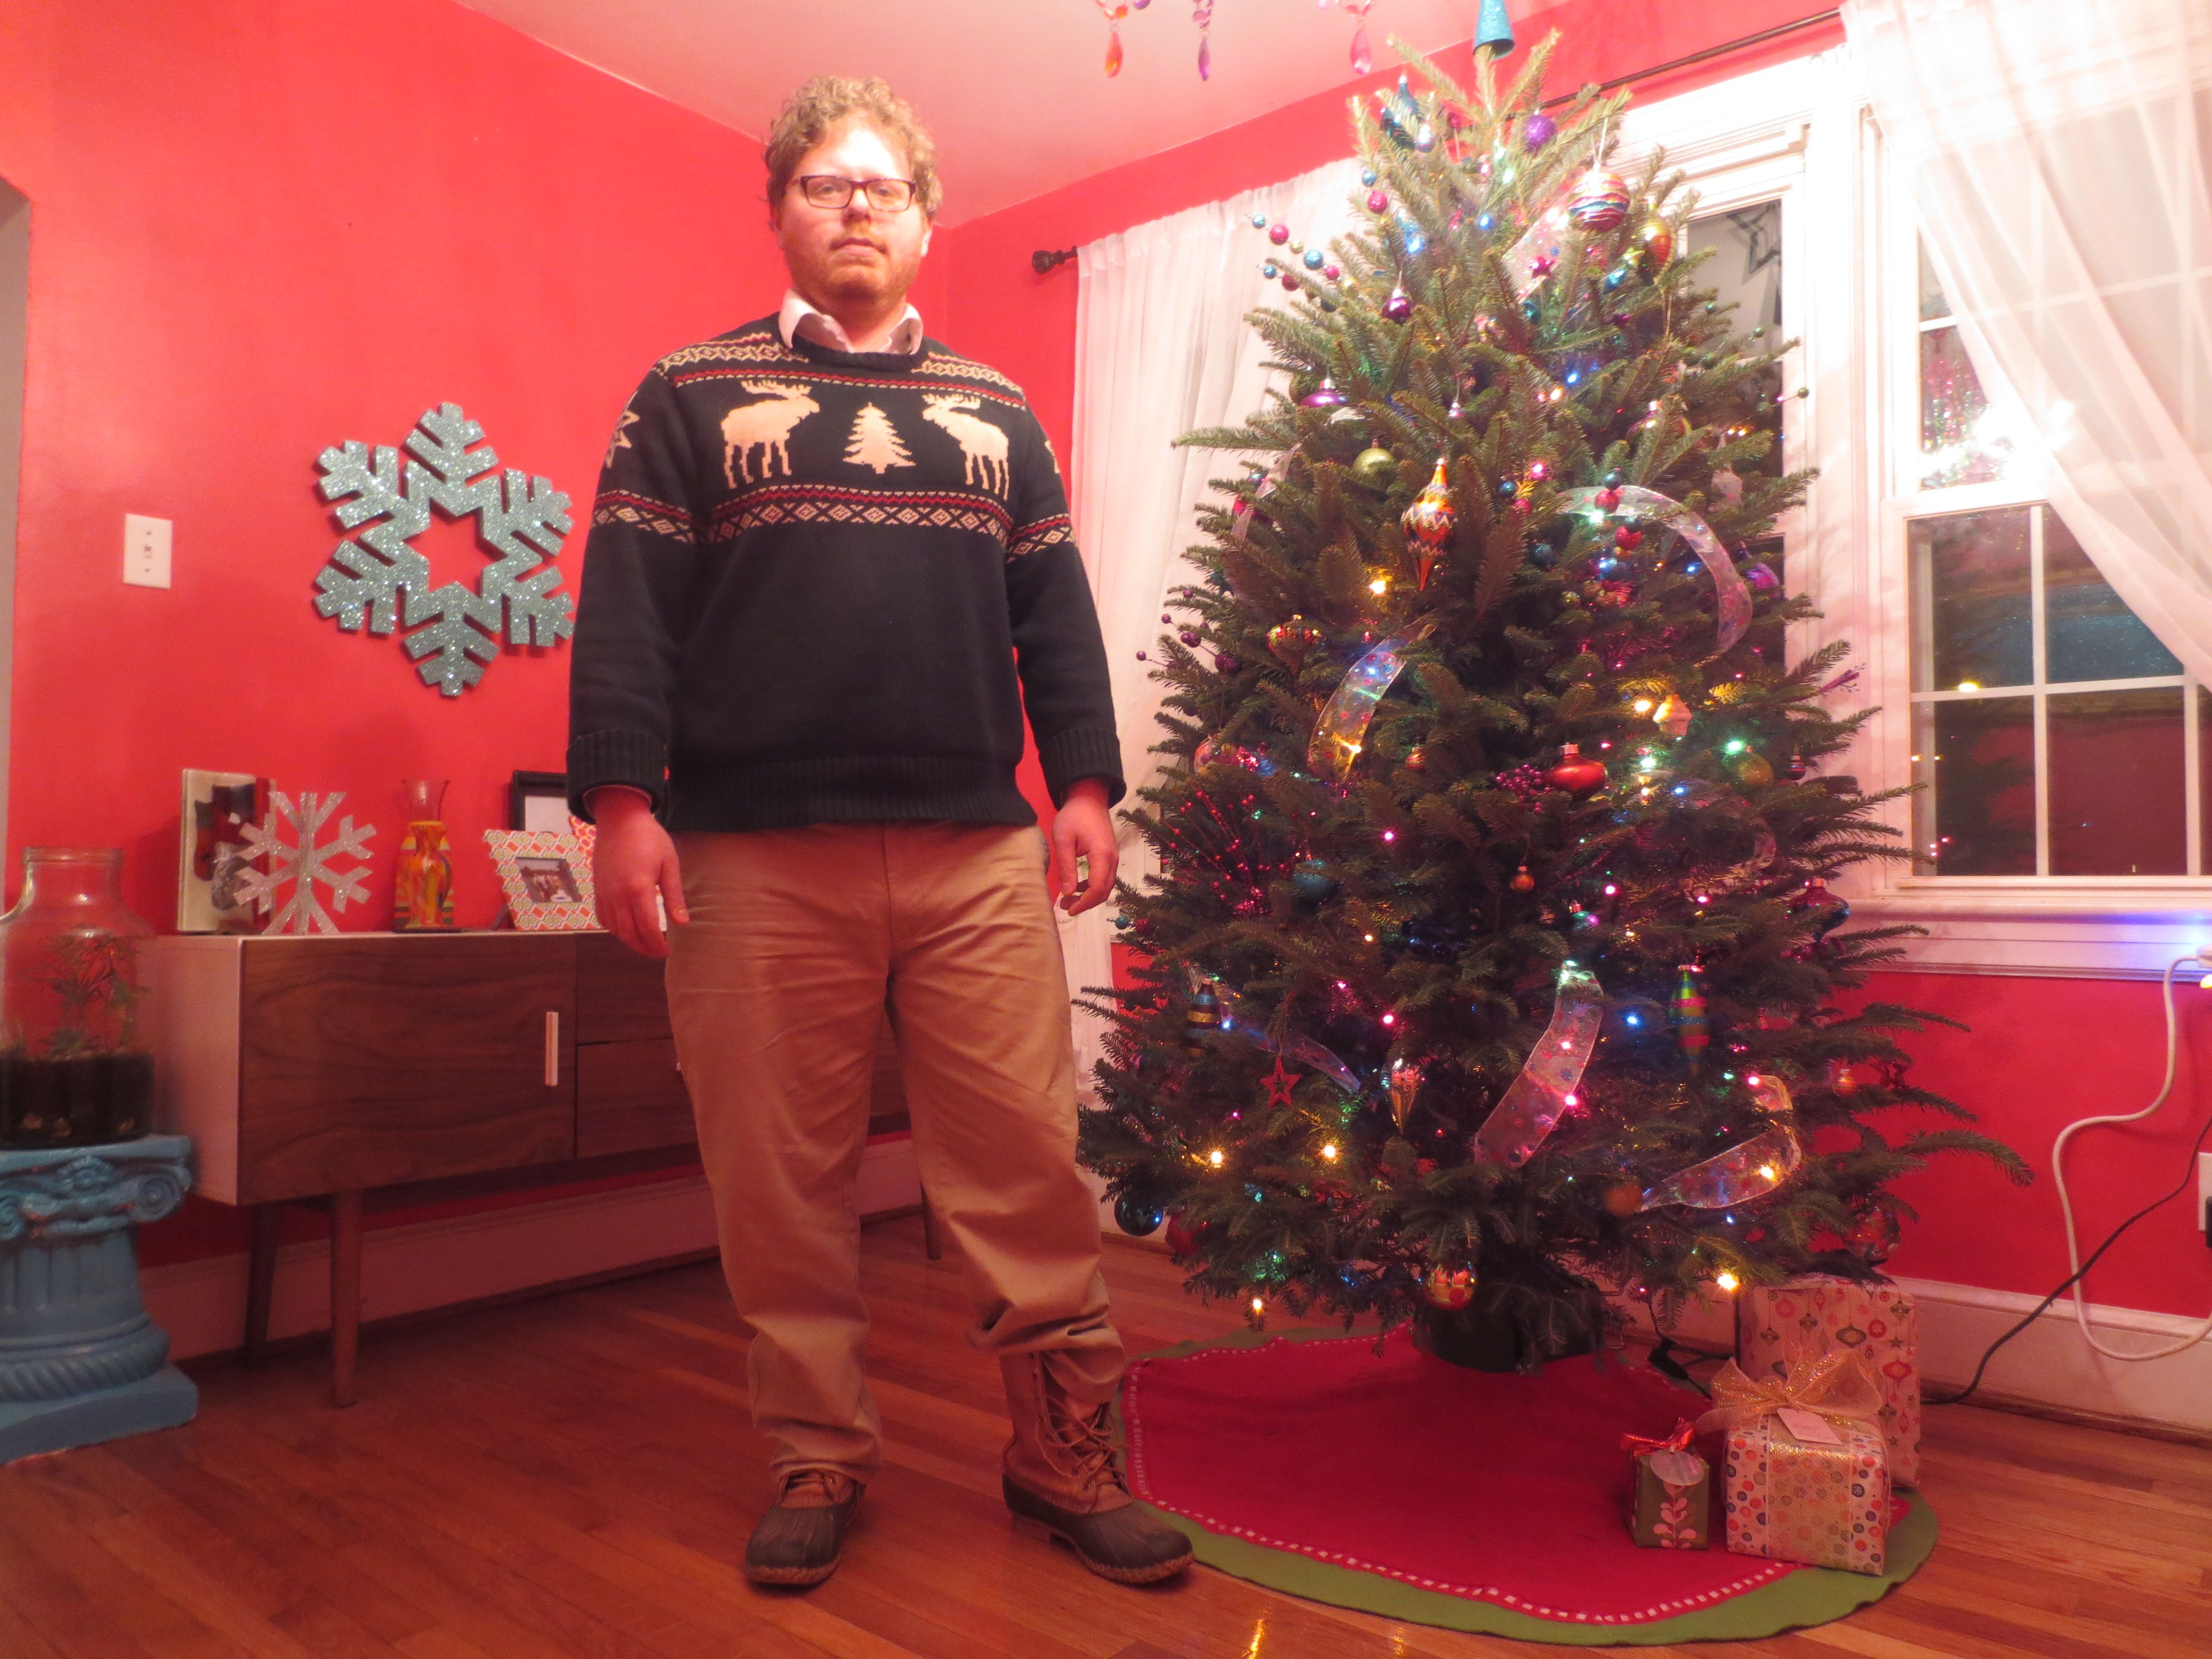 Day 10 of Donning My Gay Apparel   Menswear Christmas/holiday festive   http://theostentatiousgentleman.blogspot.com/2013/12/25-days-of-donning-my-gay-apparel-day-10.html